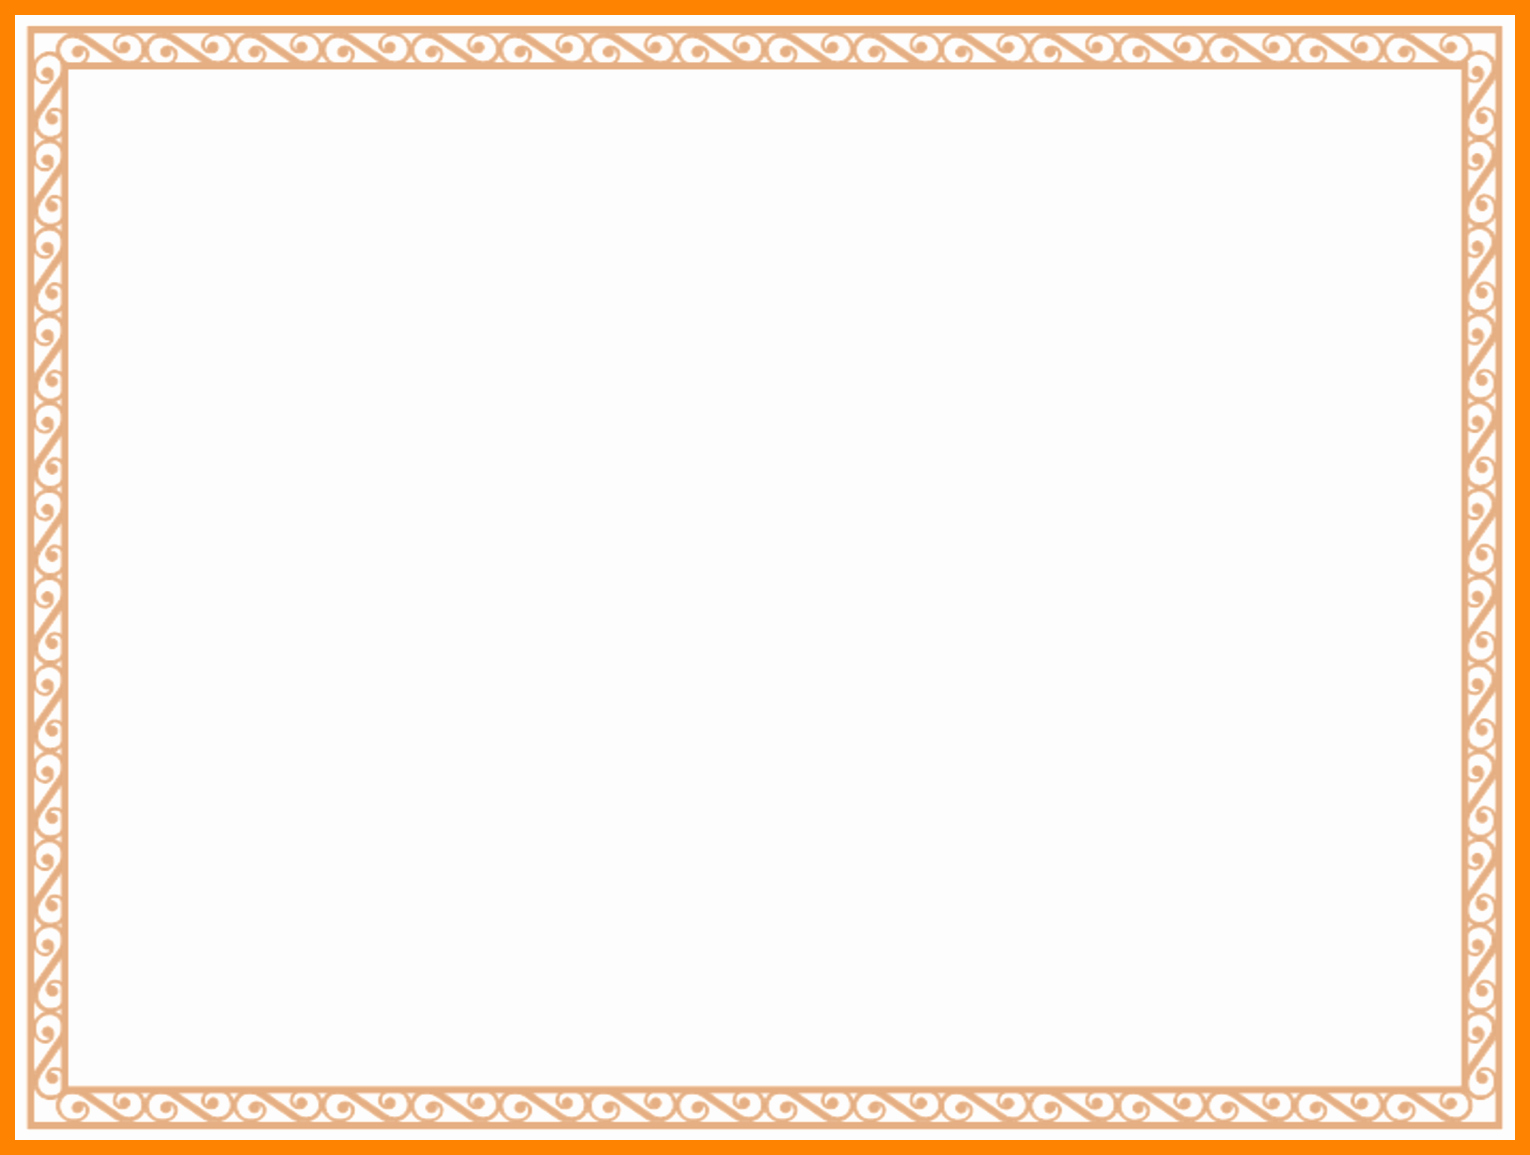 Images Of Certificate Borders Elegant Borders Png Hd Transparent Borders Hd Png